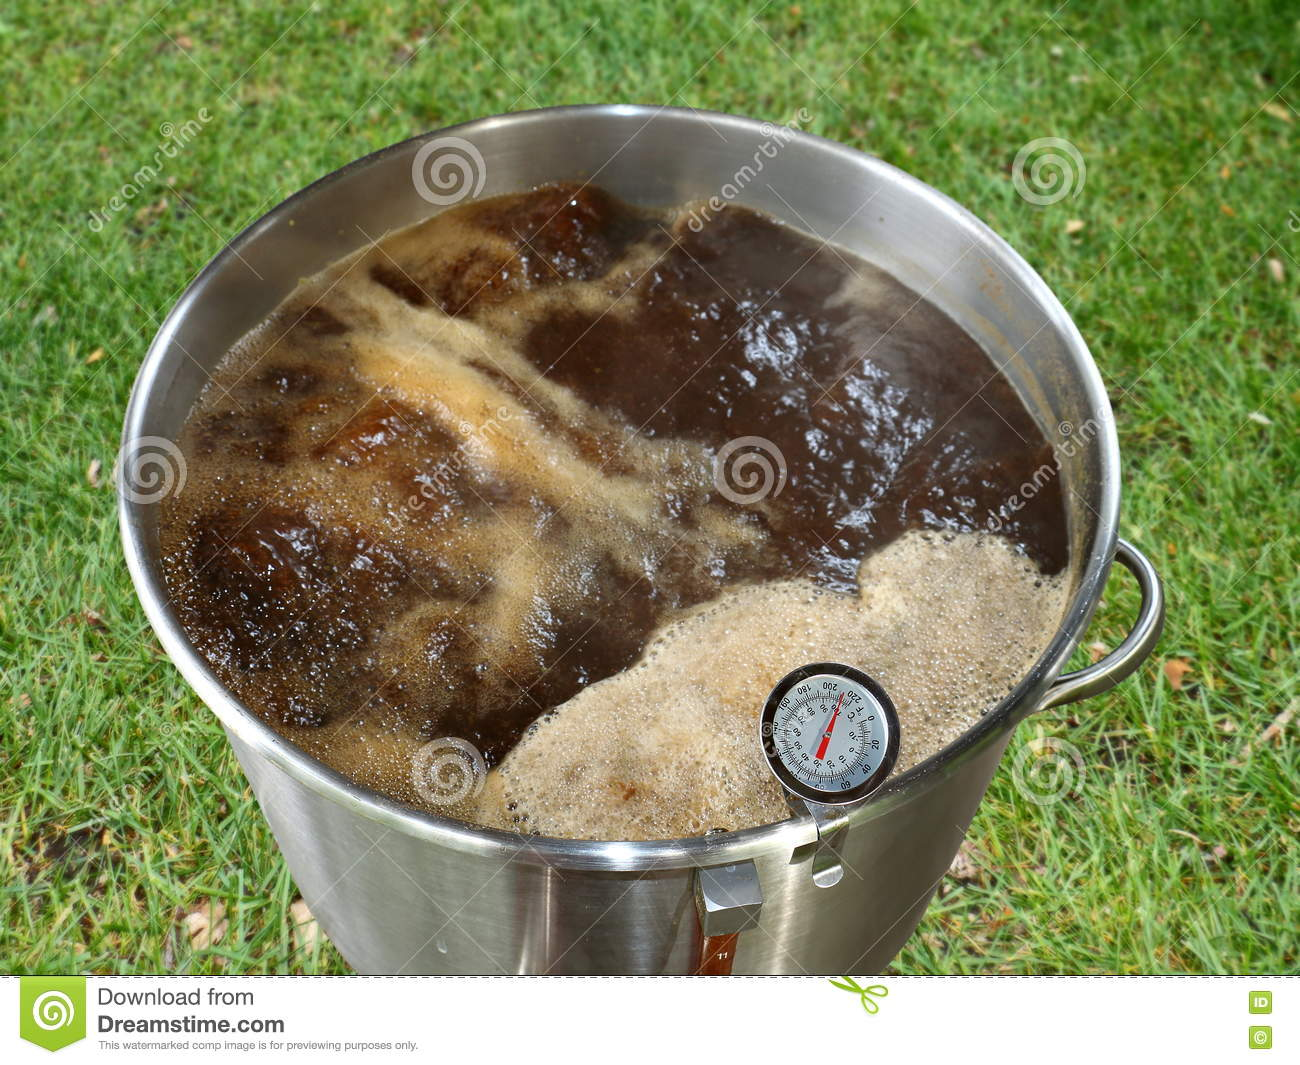 Boiling Wort Outdoors for Home Brewed Brown Ale